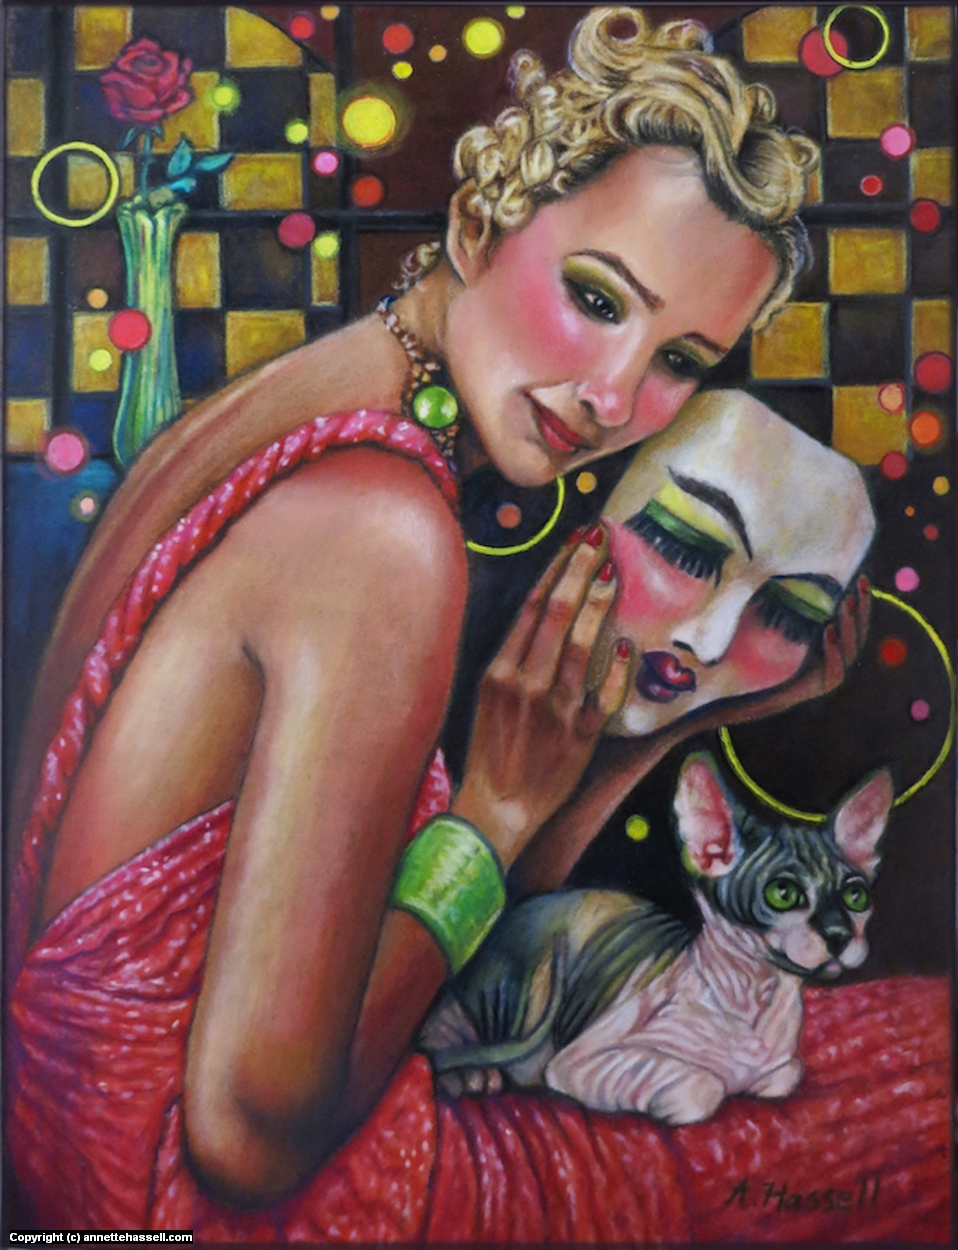 Imposter Artwork by Annette Hassell